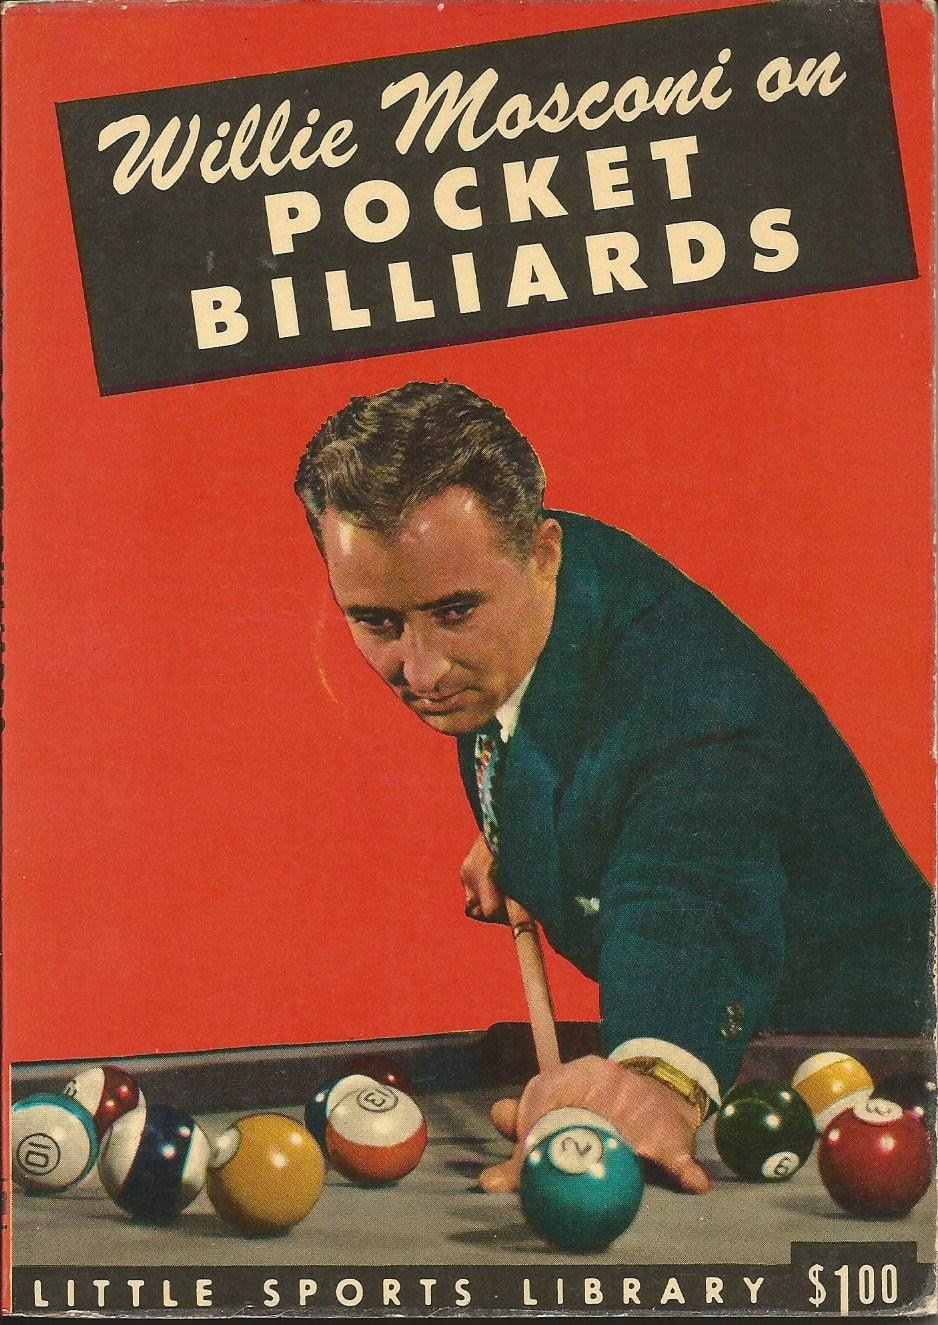 Willie Mosconi On Pocket Billiards The Classic Book on the Game by the Legendary King of Pocket Billiards